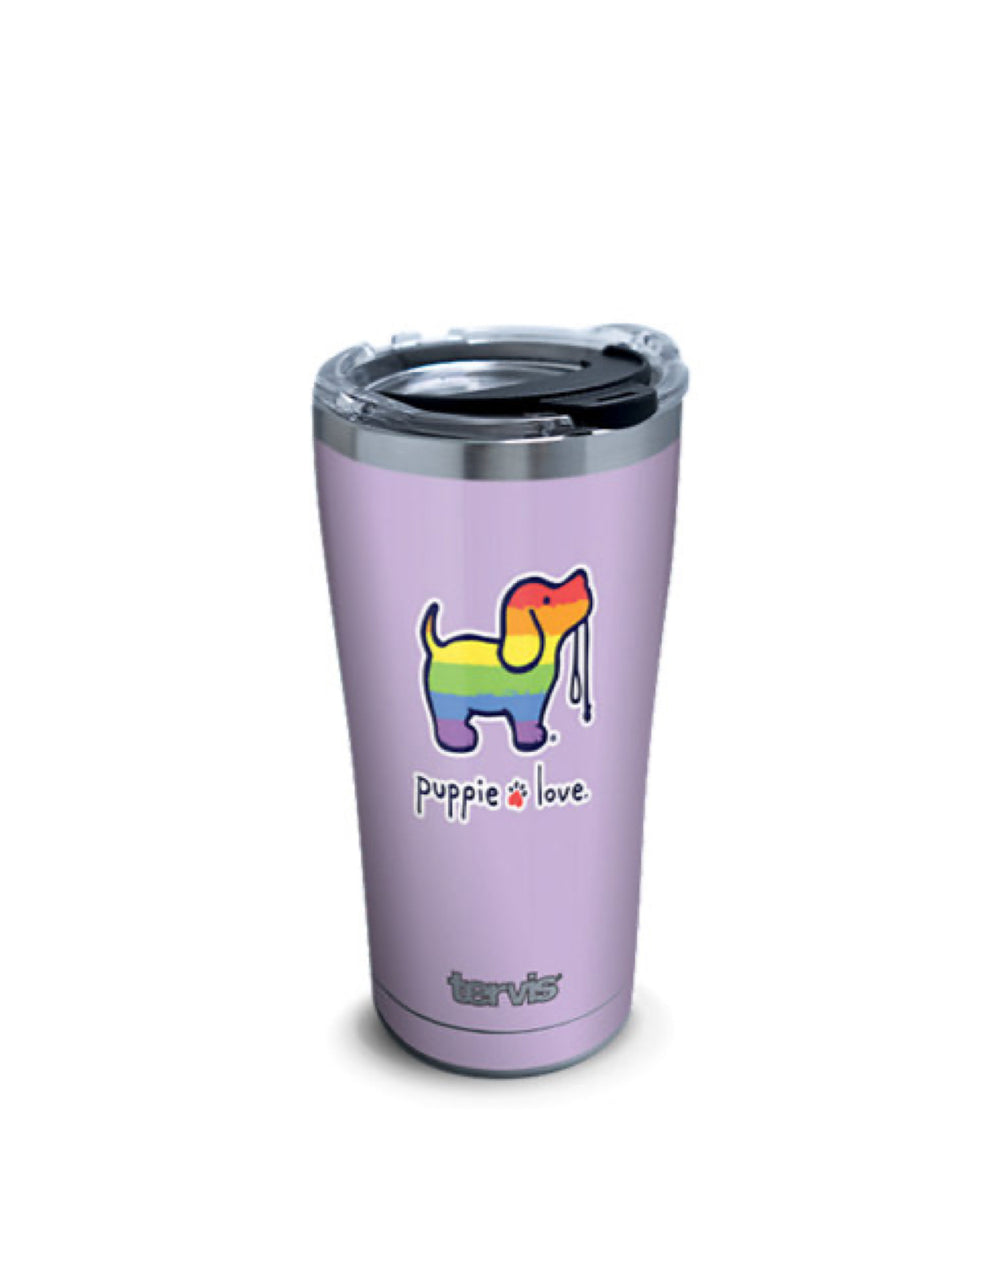 RAINBOW PUP 20oz STAINLESS STEEL TUMBLER - Puppie Love